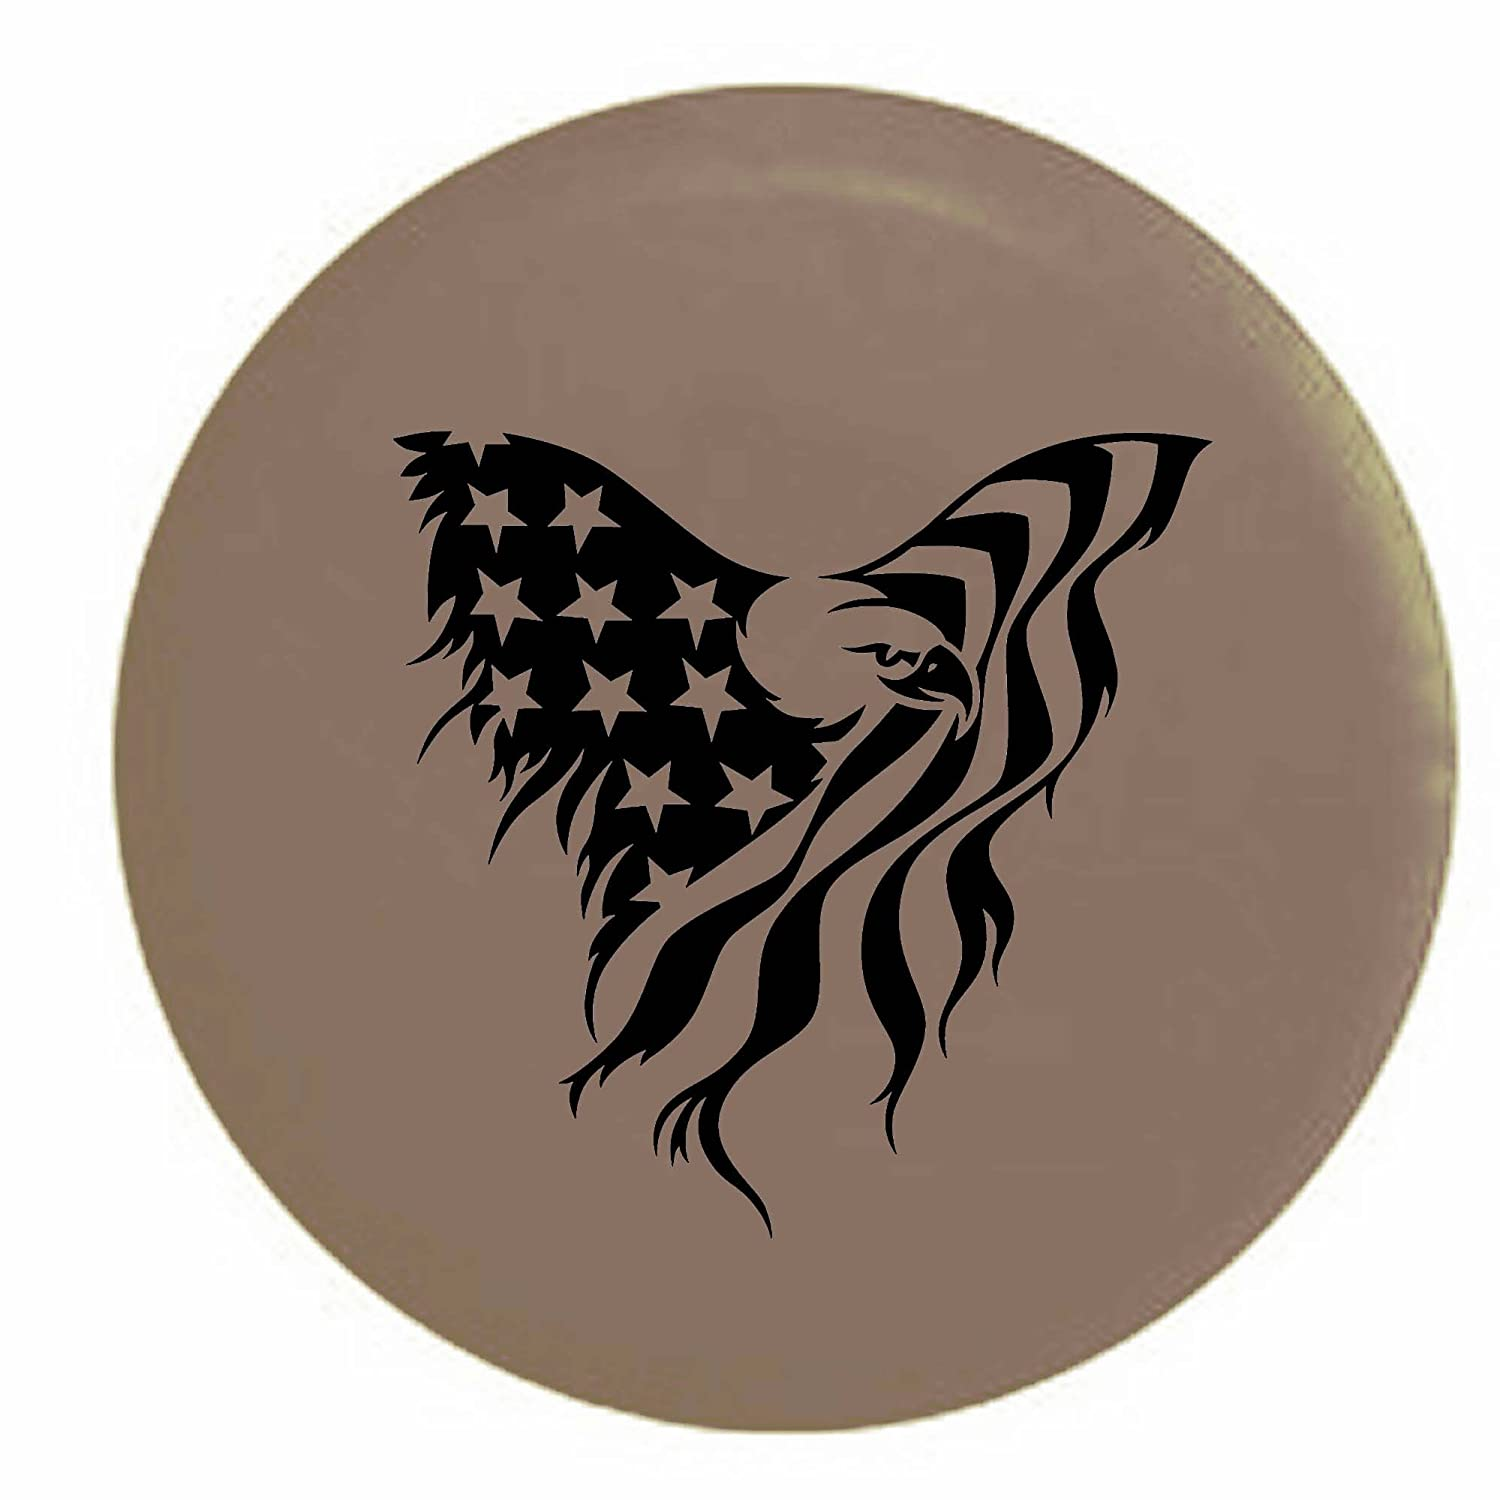 Pike American Bald Eagle Stars and Stripes Flag Trailer RV Spare Tire Cover OEM Vinyl Tan 32 in